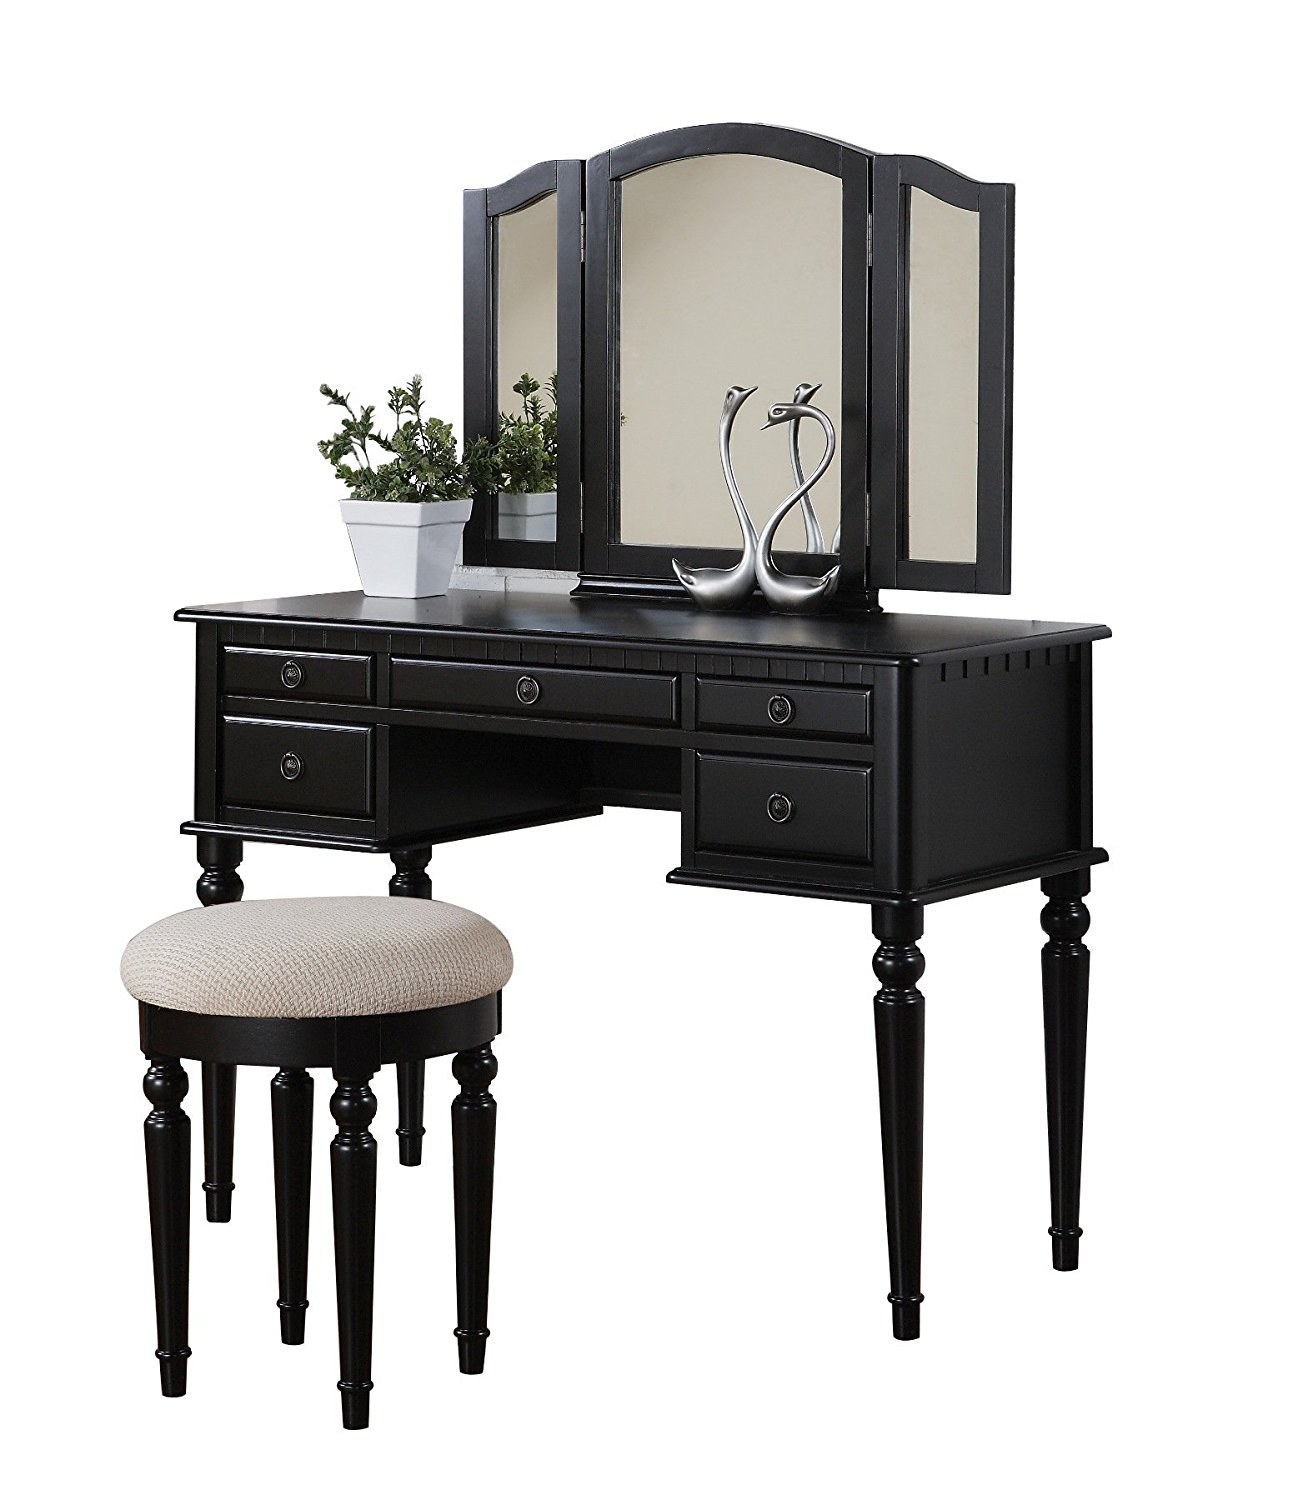 Makeup Vanity Table With Lighted Mirror - Decor IdeasDecor Ideas